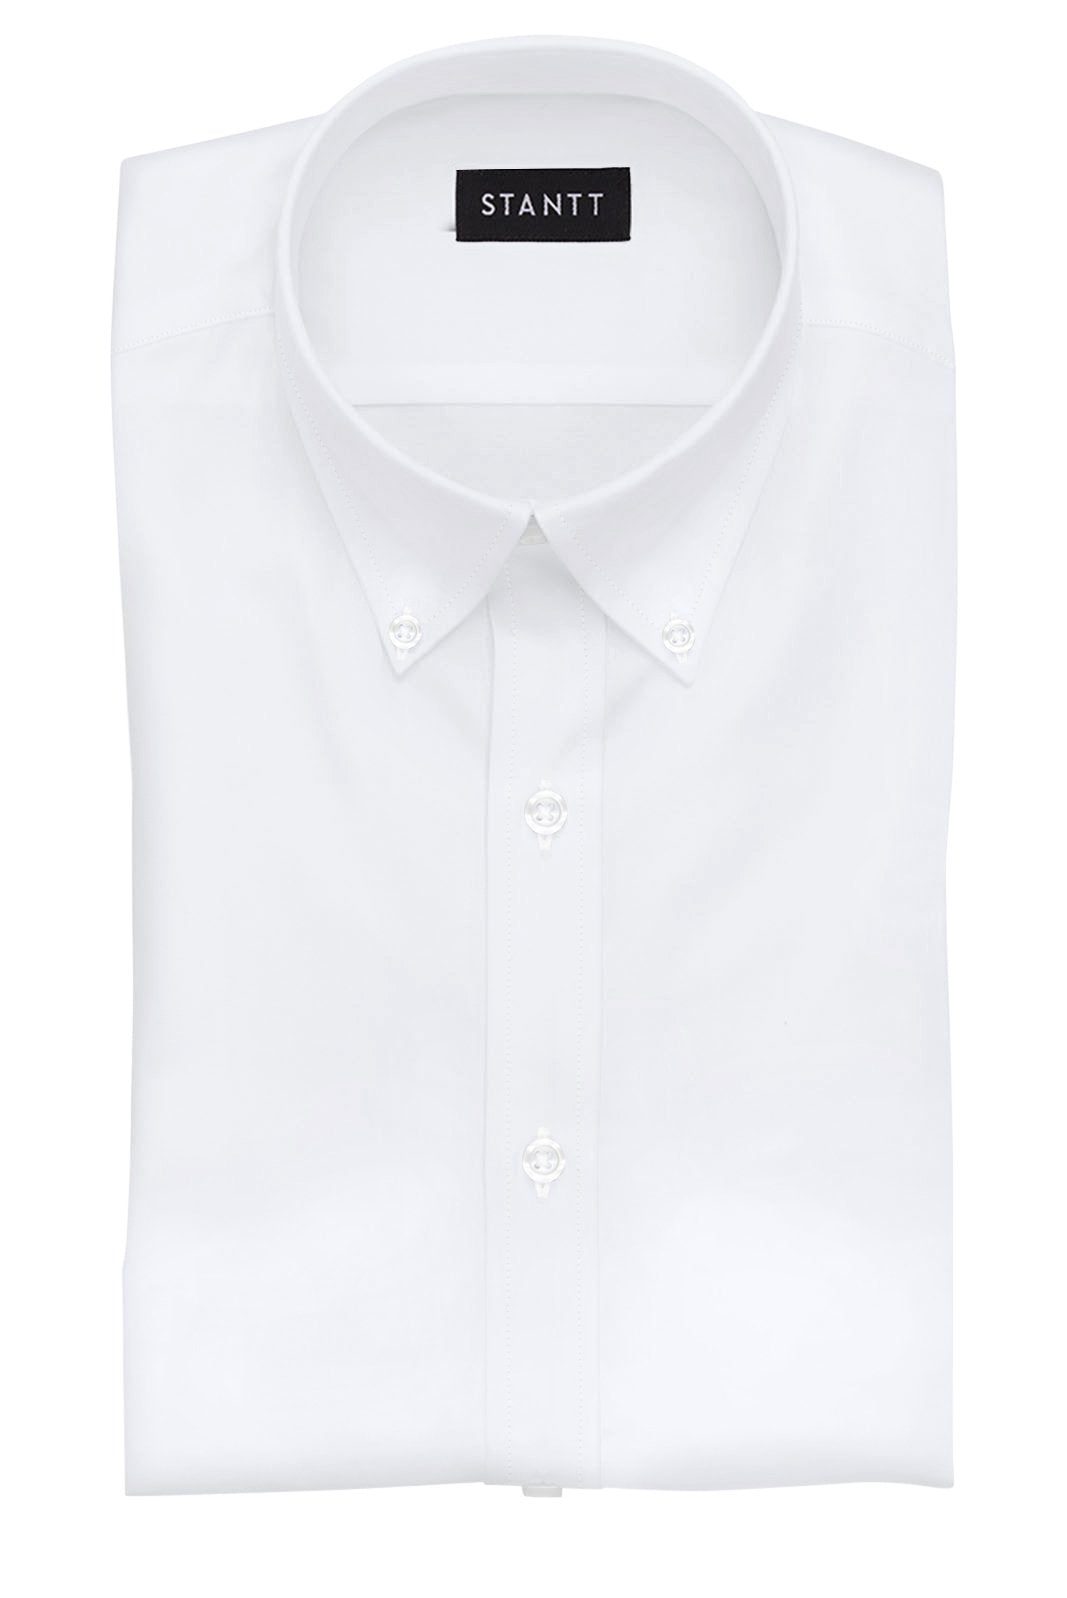 Performance White: Button-Down Collar, Barrel Cuff